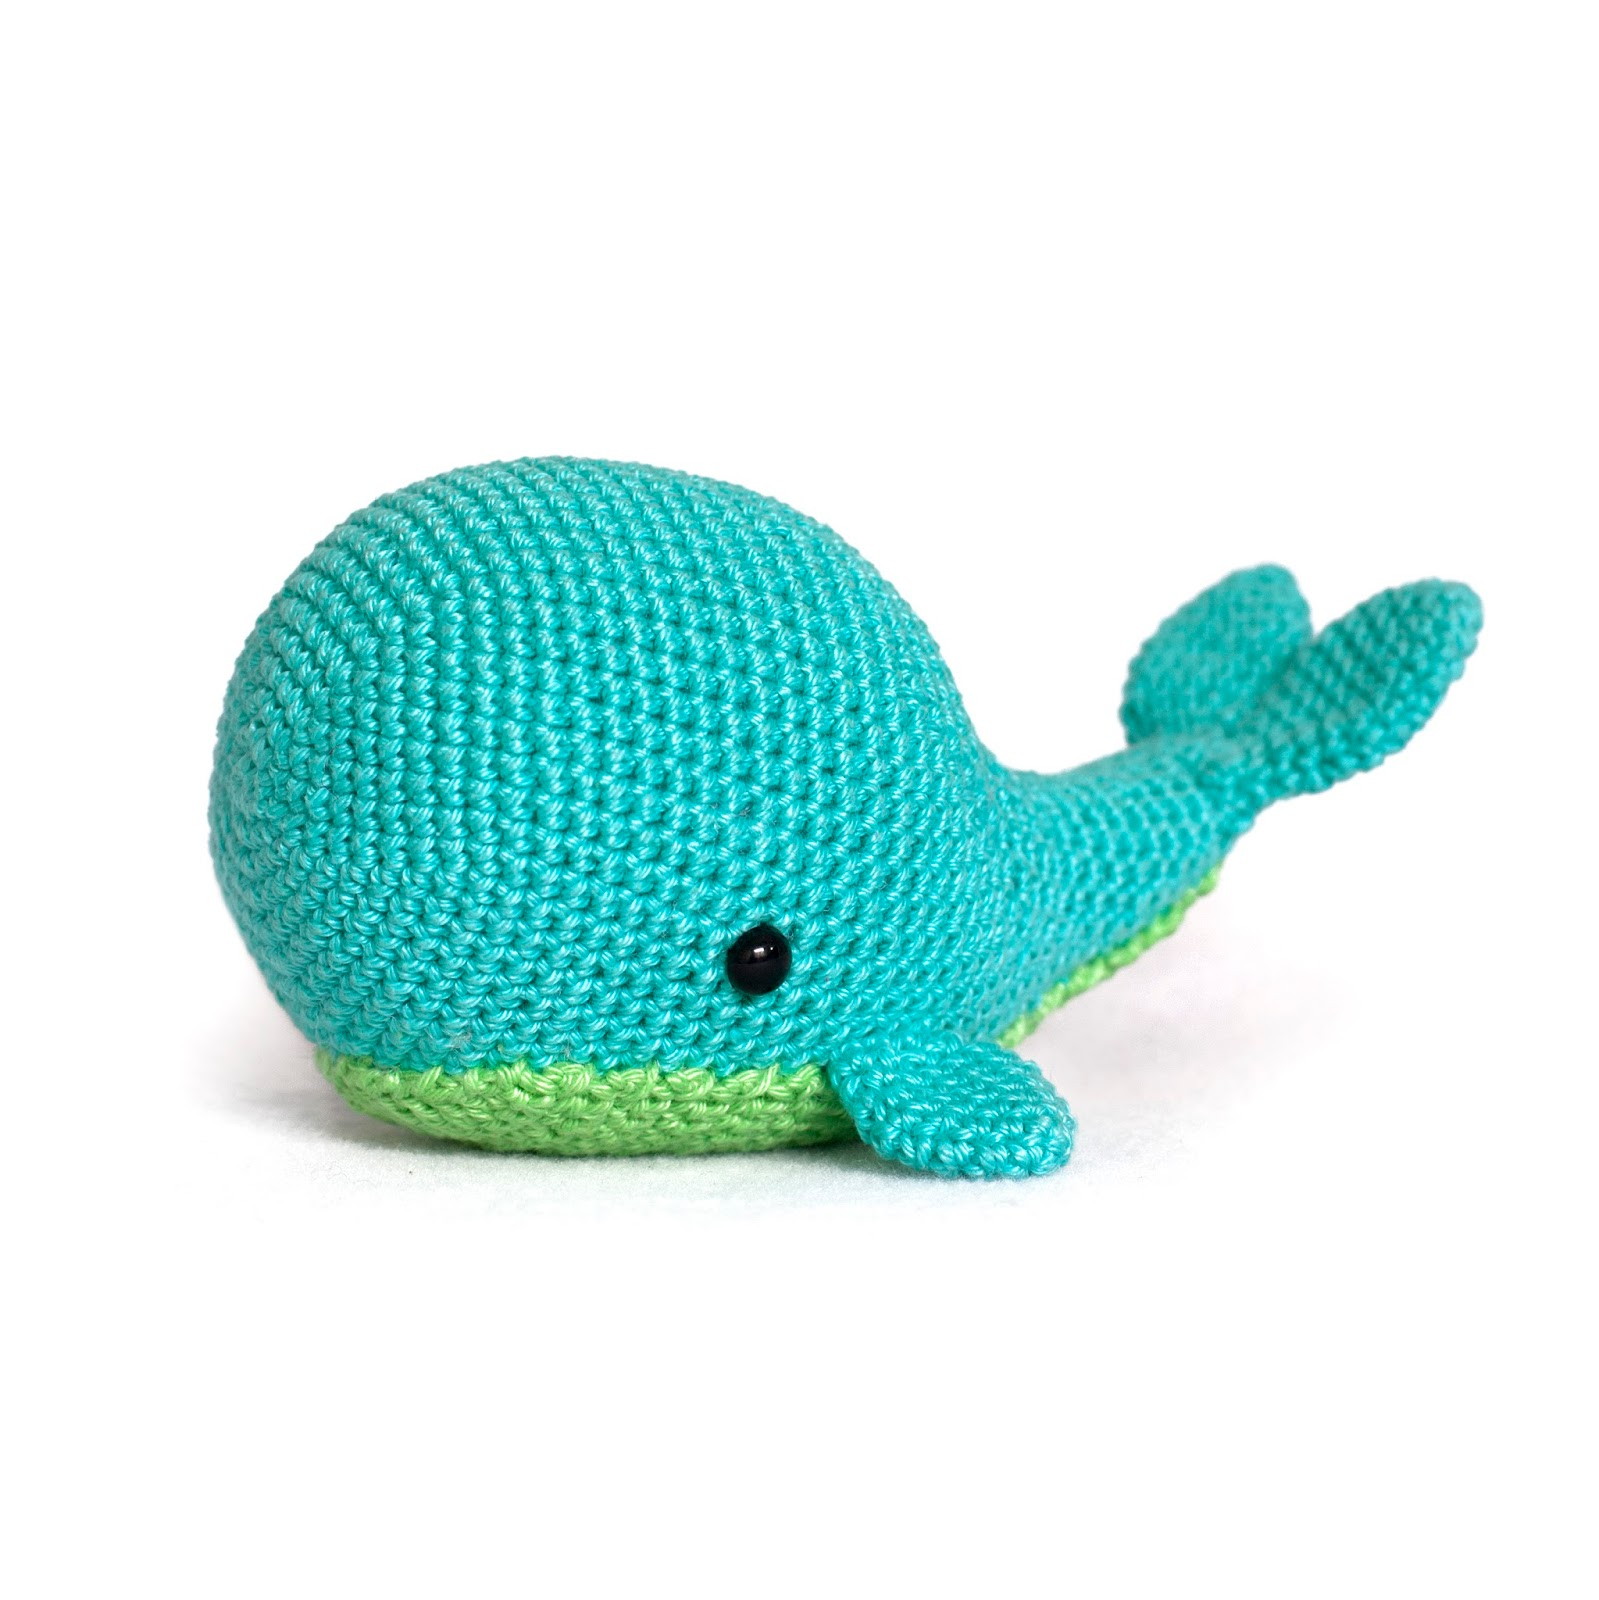 Amigurumi Whale : Toy Patterns by DIY Fluffies : Whale amigurumi crochet pattern